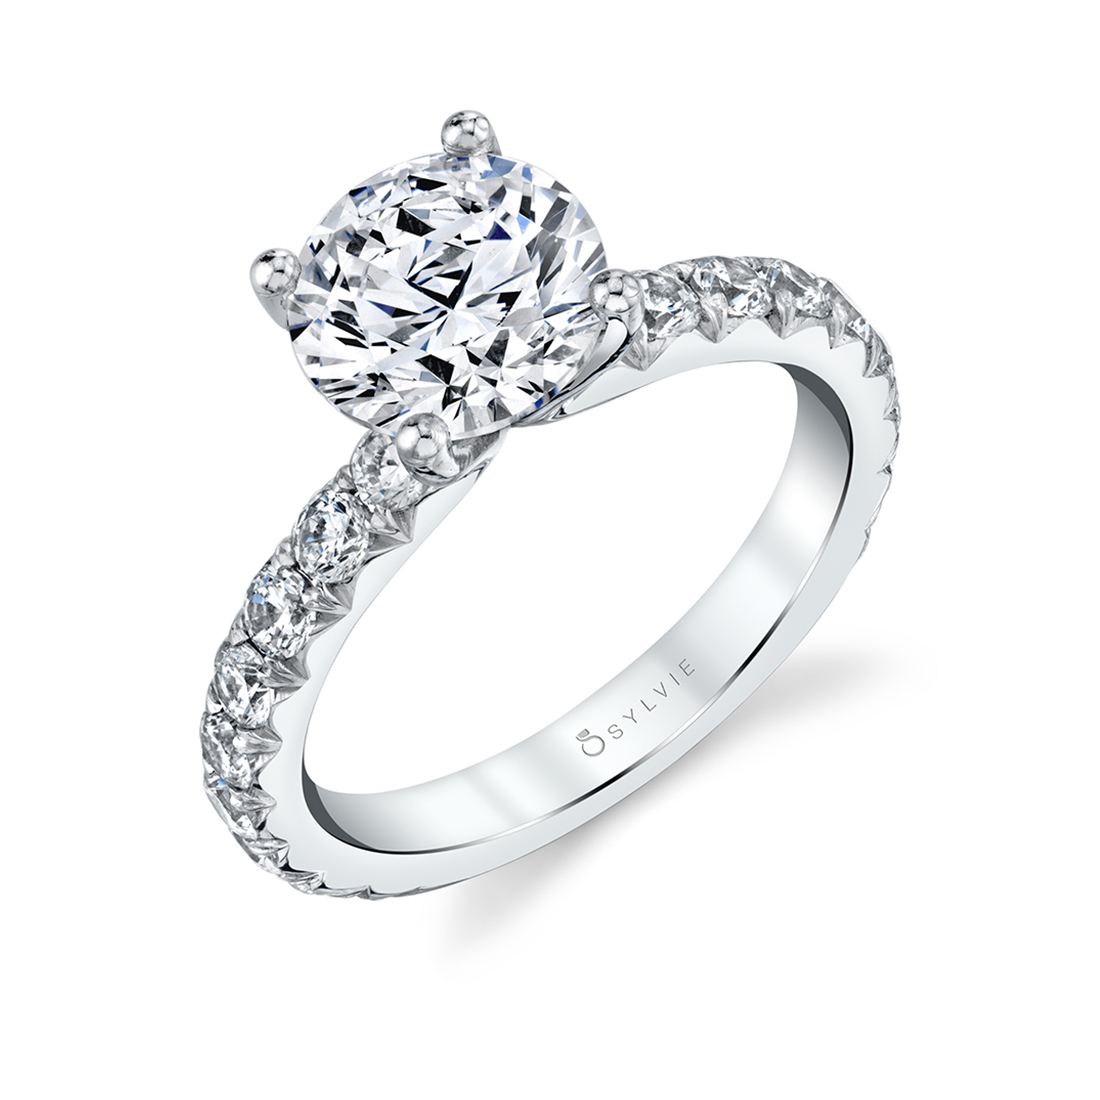 side view of a Wide Band Engagement Ring - Marlise